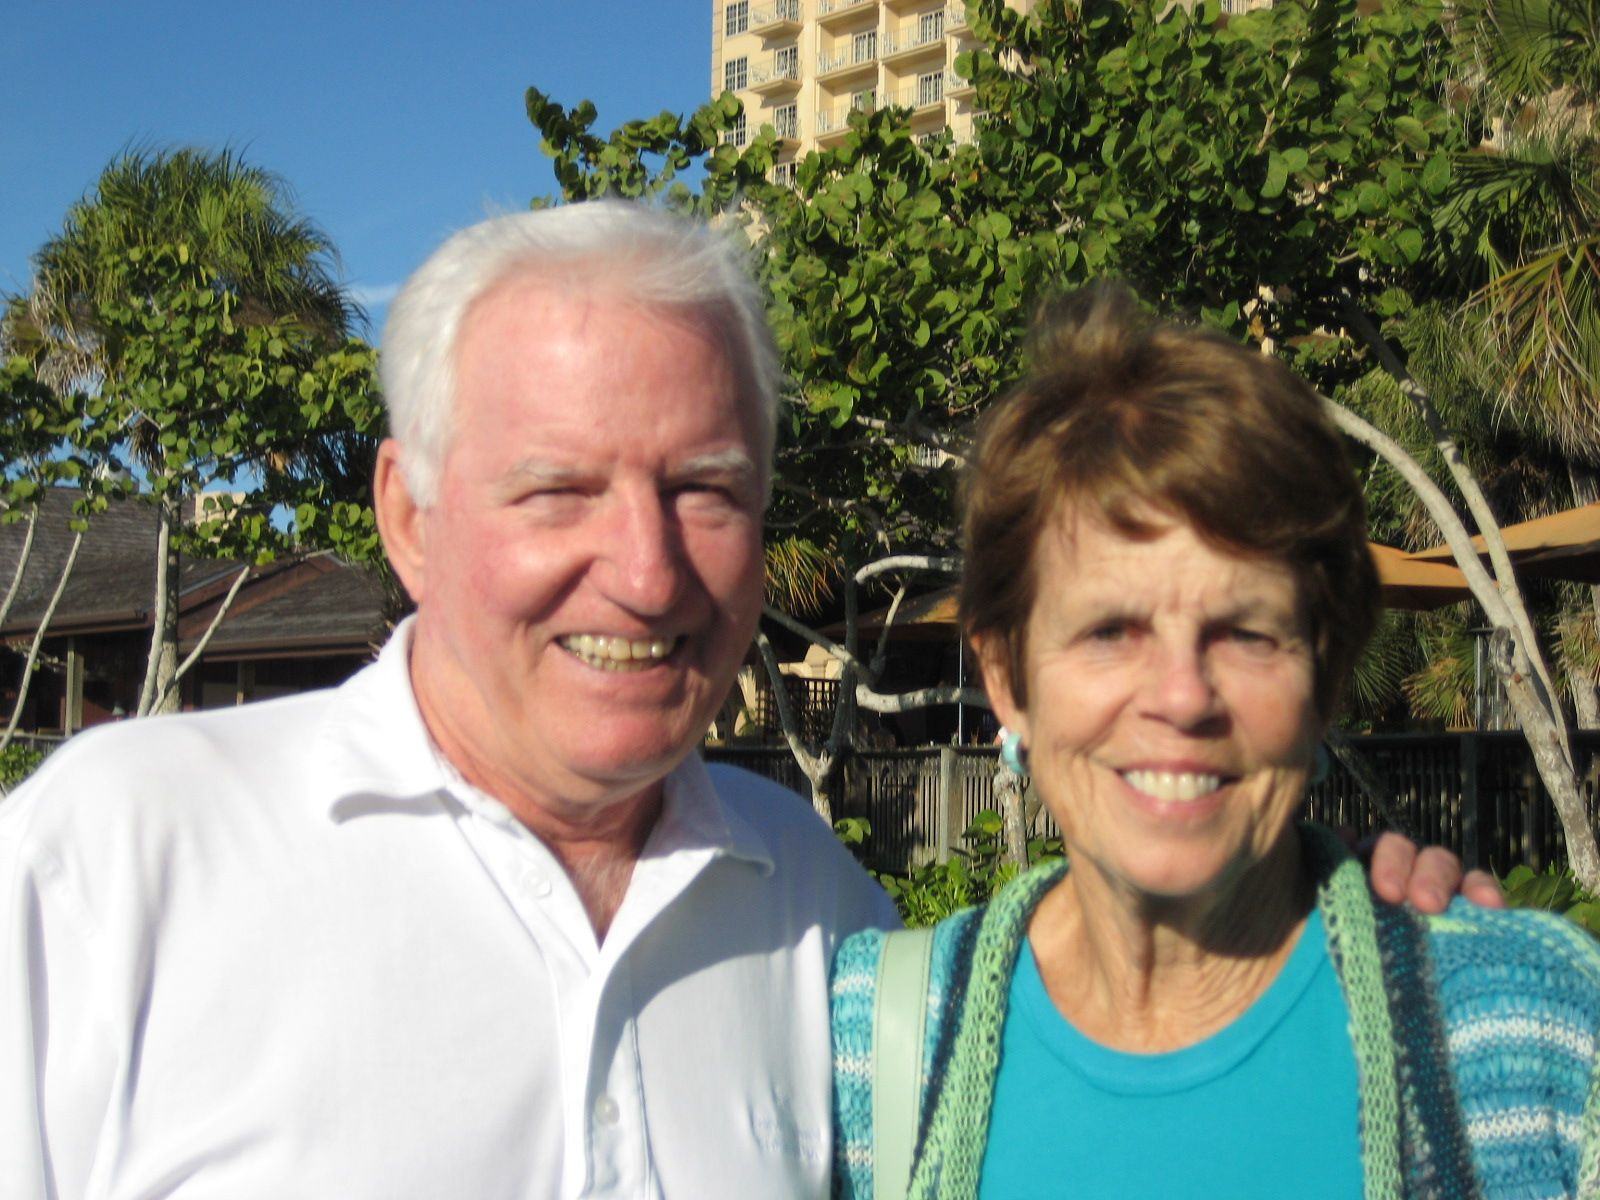 Jane and Bill Hogan '59 in Naples, FL on November 12, 2014.